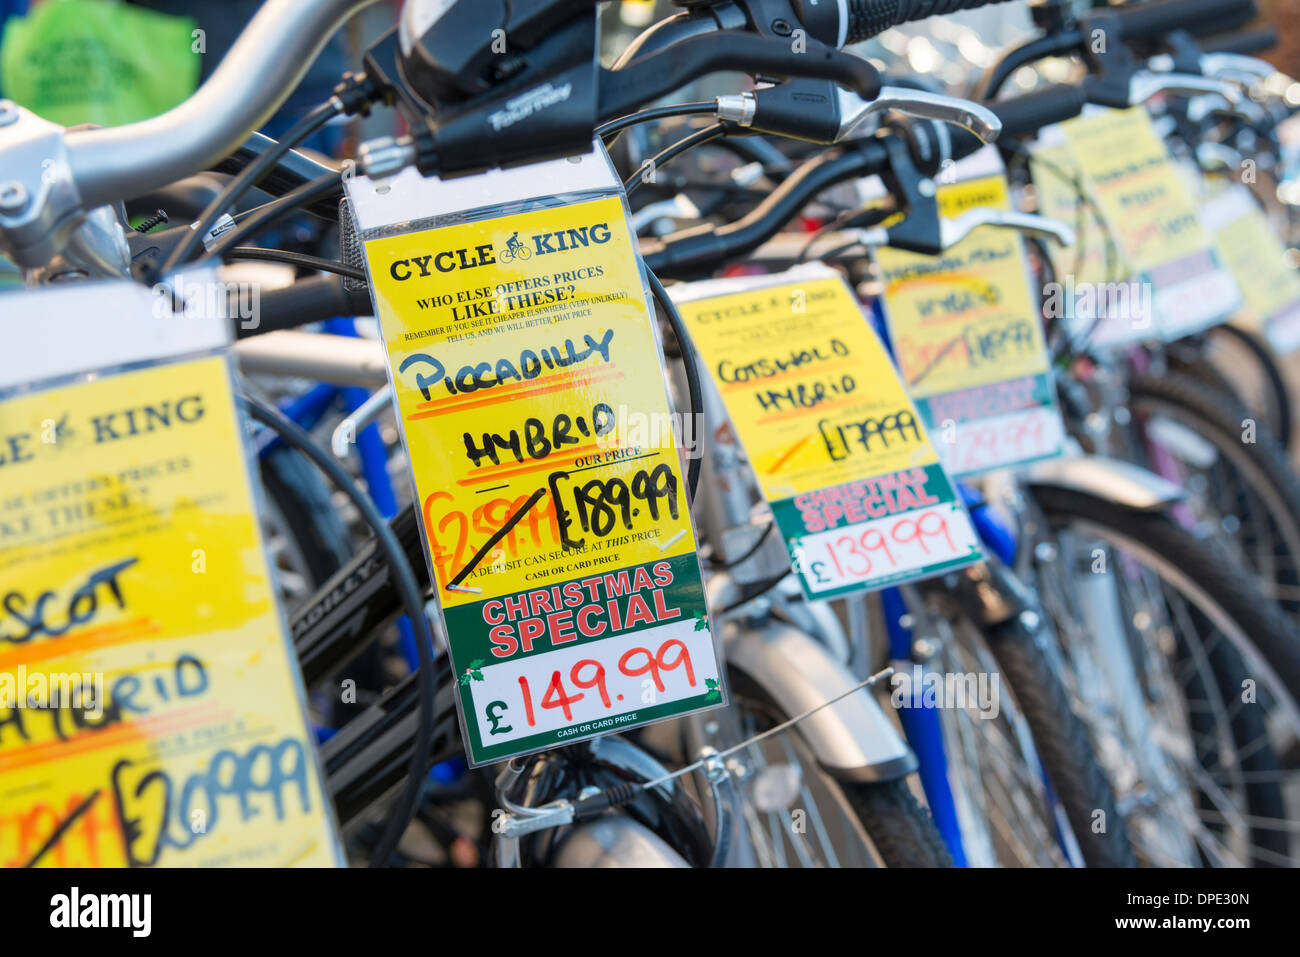 Bike Shop Sale Bikes For Sale Stock Photos Bikes For Sale Stock Images Alamy